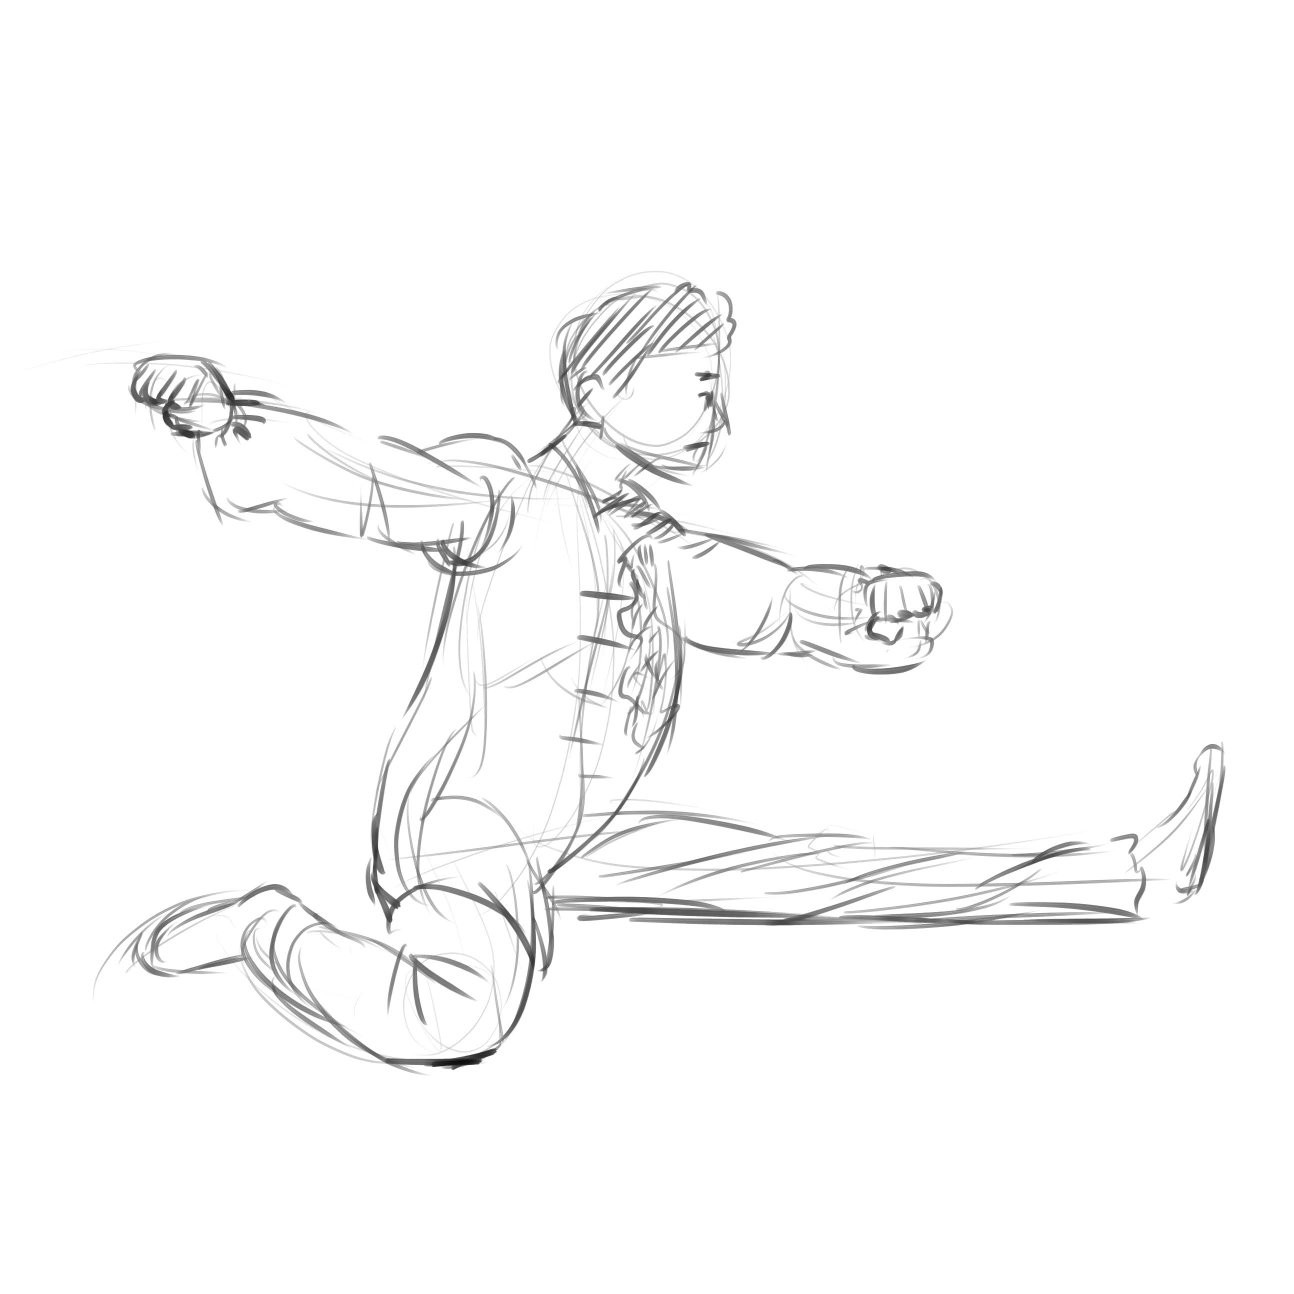 Man in Chinese-style clothes doing a split.